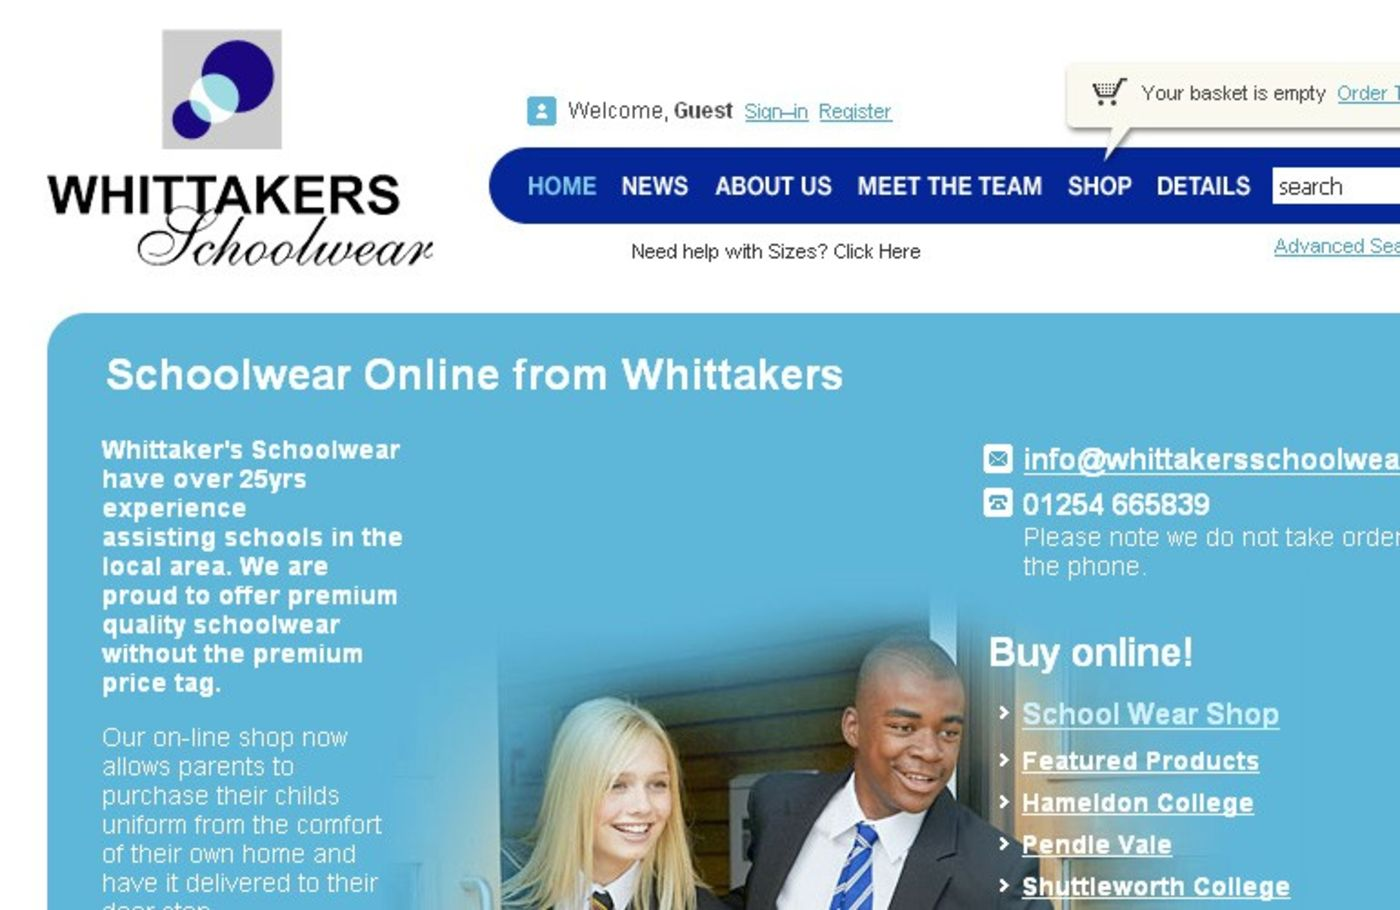 Whittakers Schoolwear Homepage header